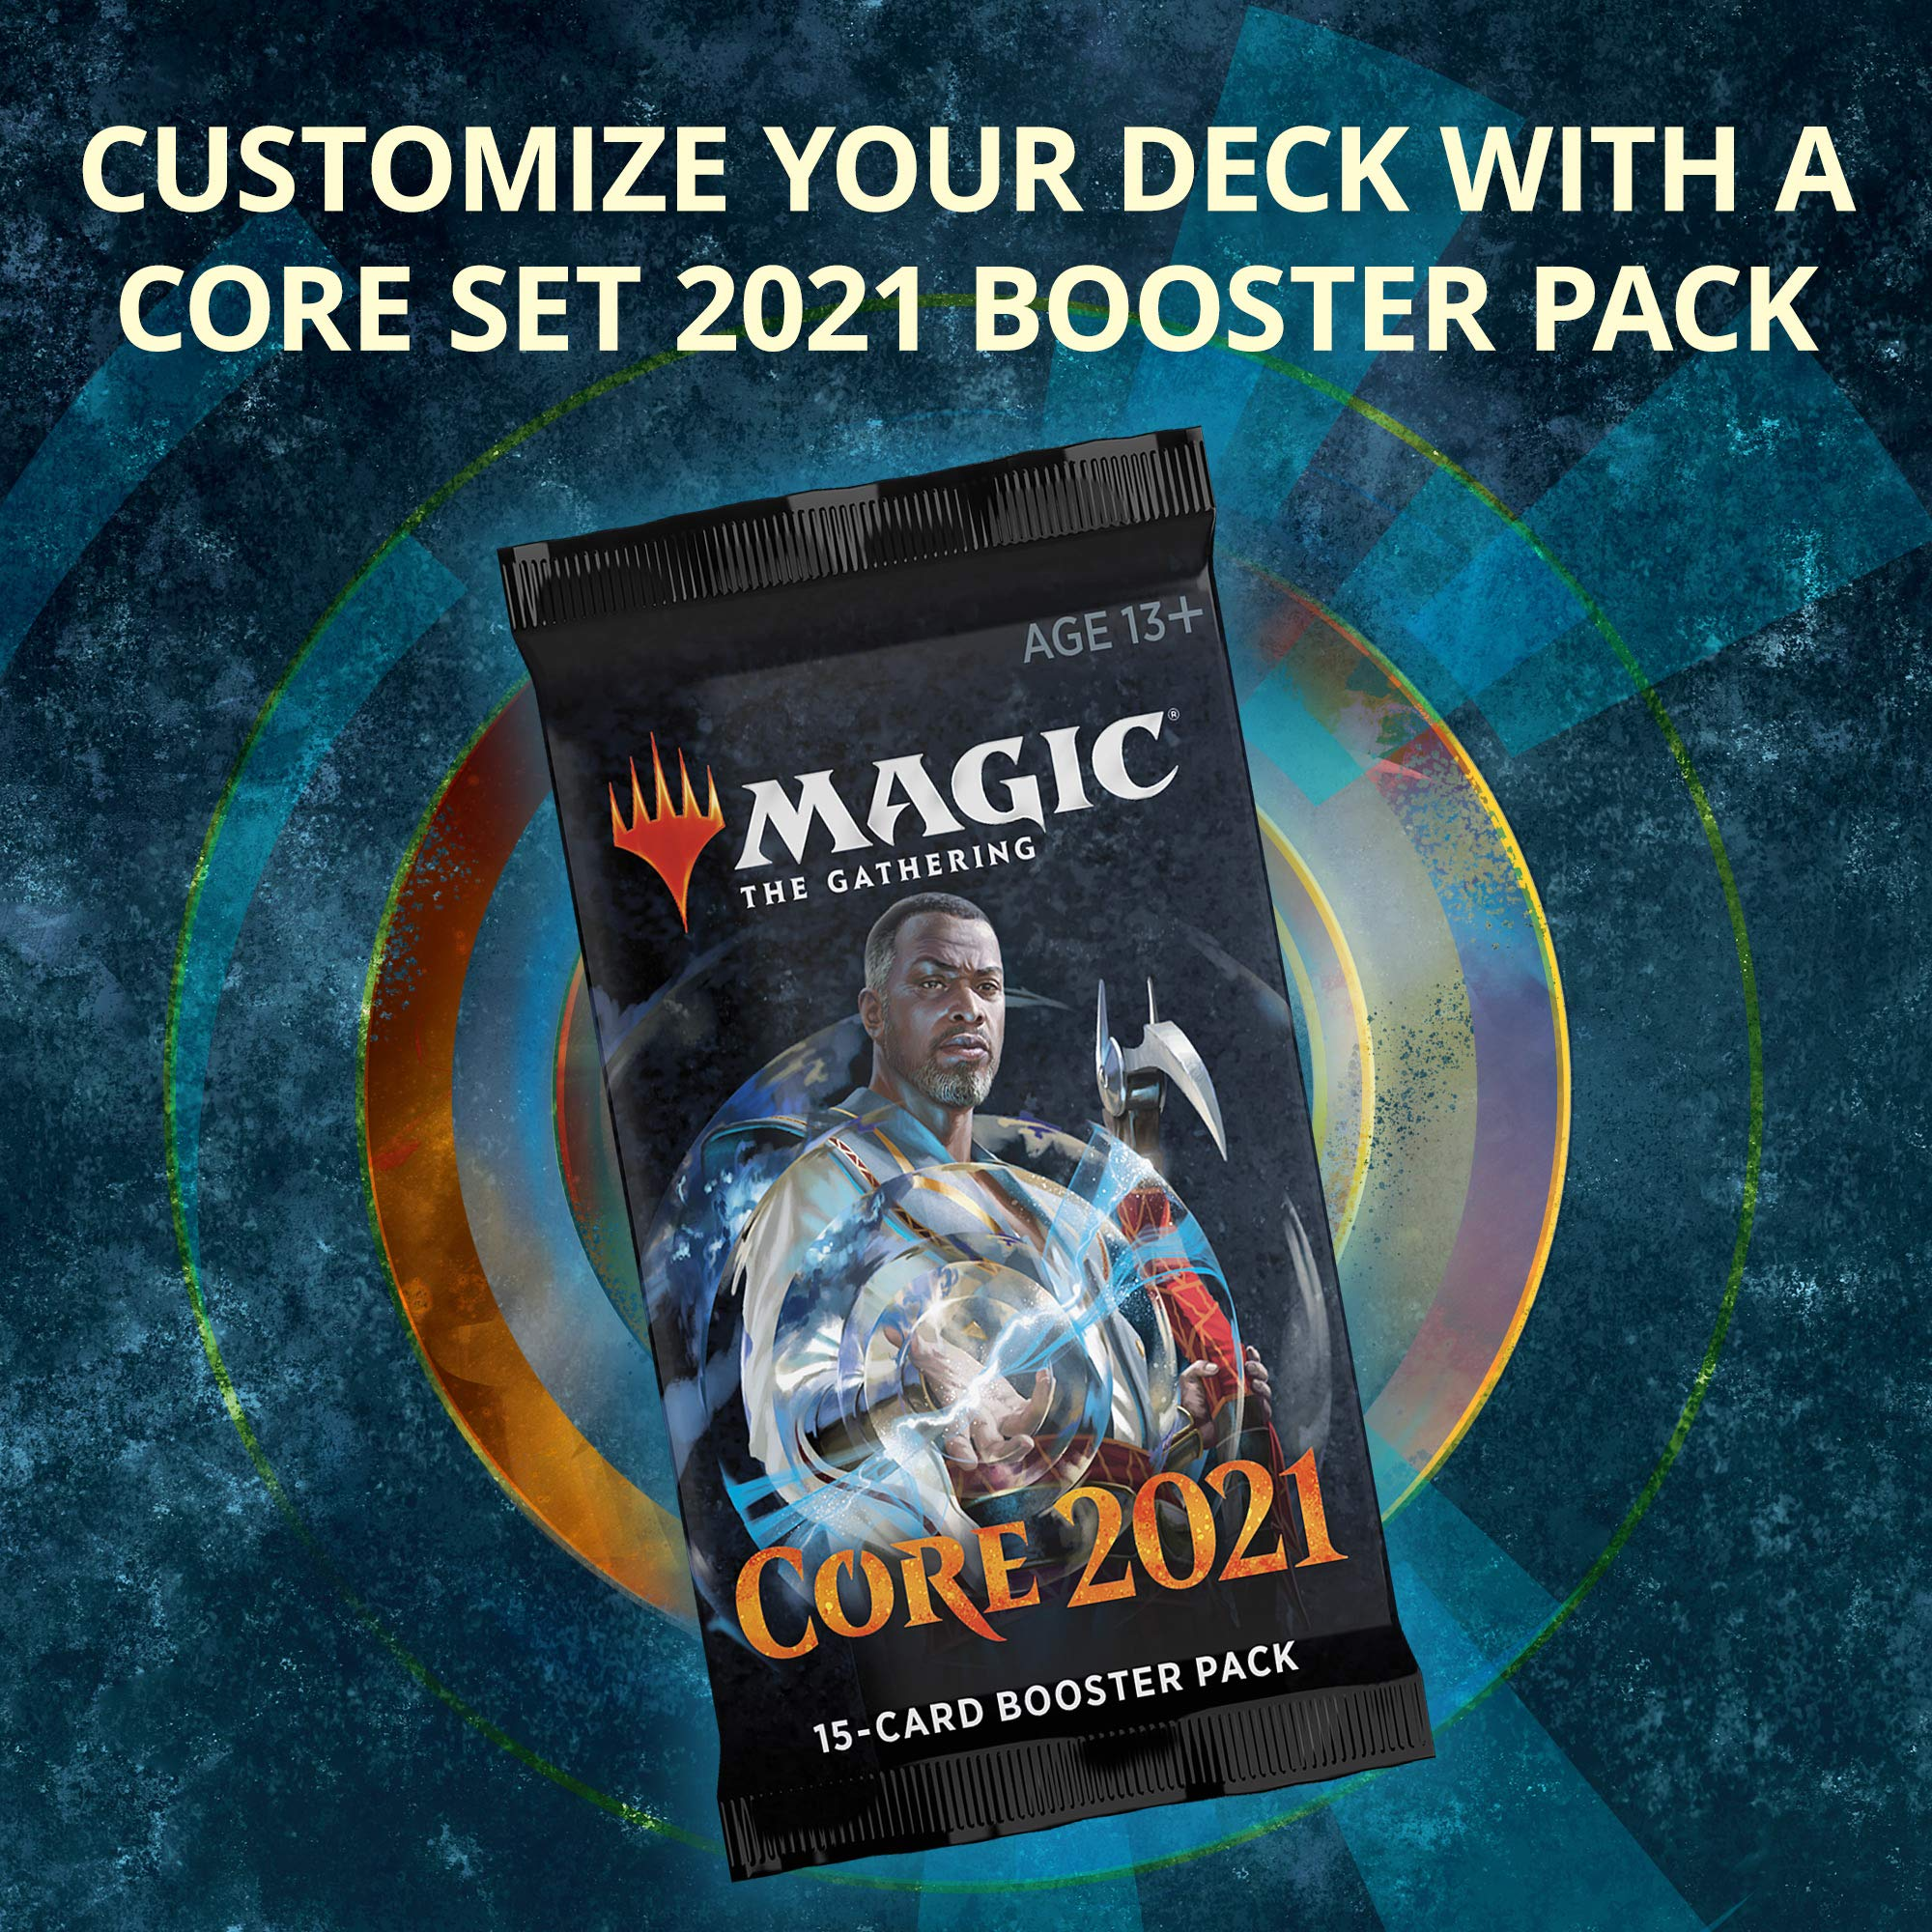 Magic The Gathering CORE21 CORE 2021 CHANDRA Deck Protector Sleeves box